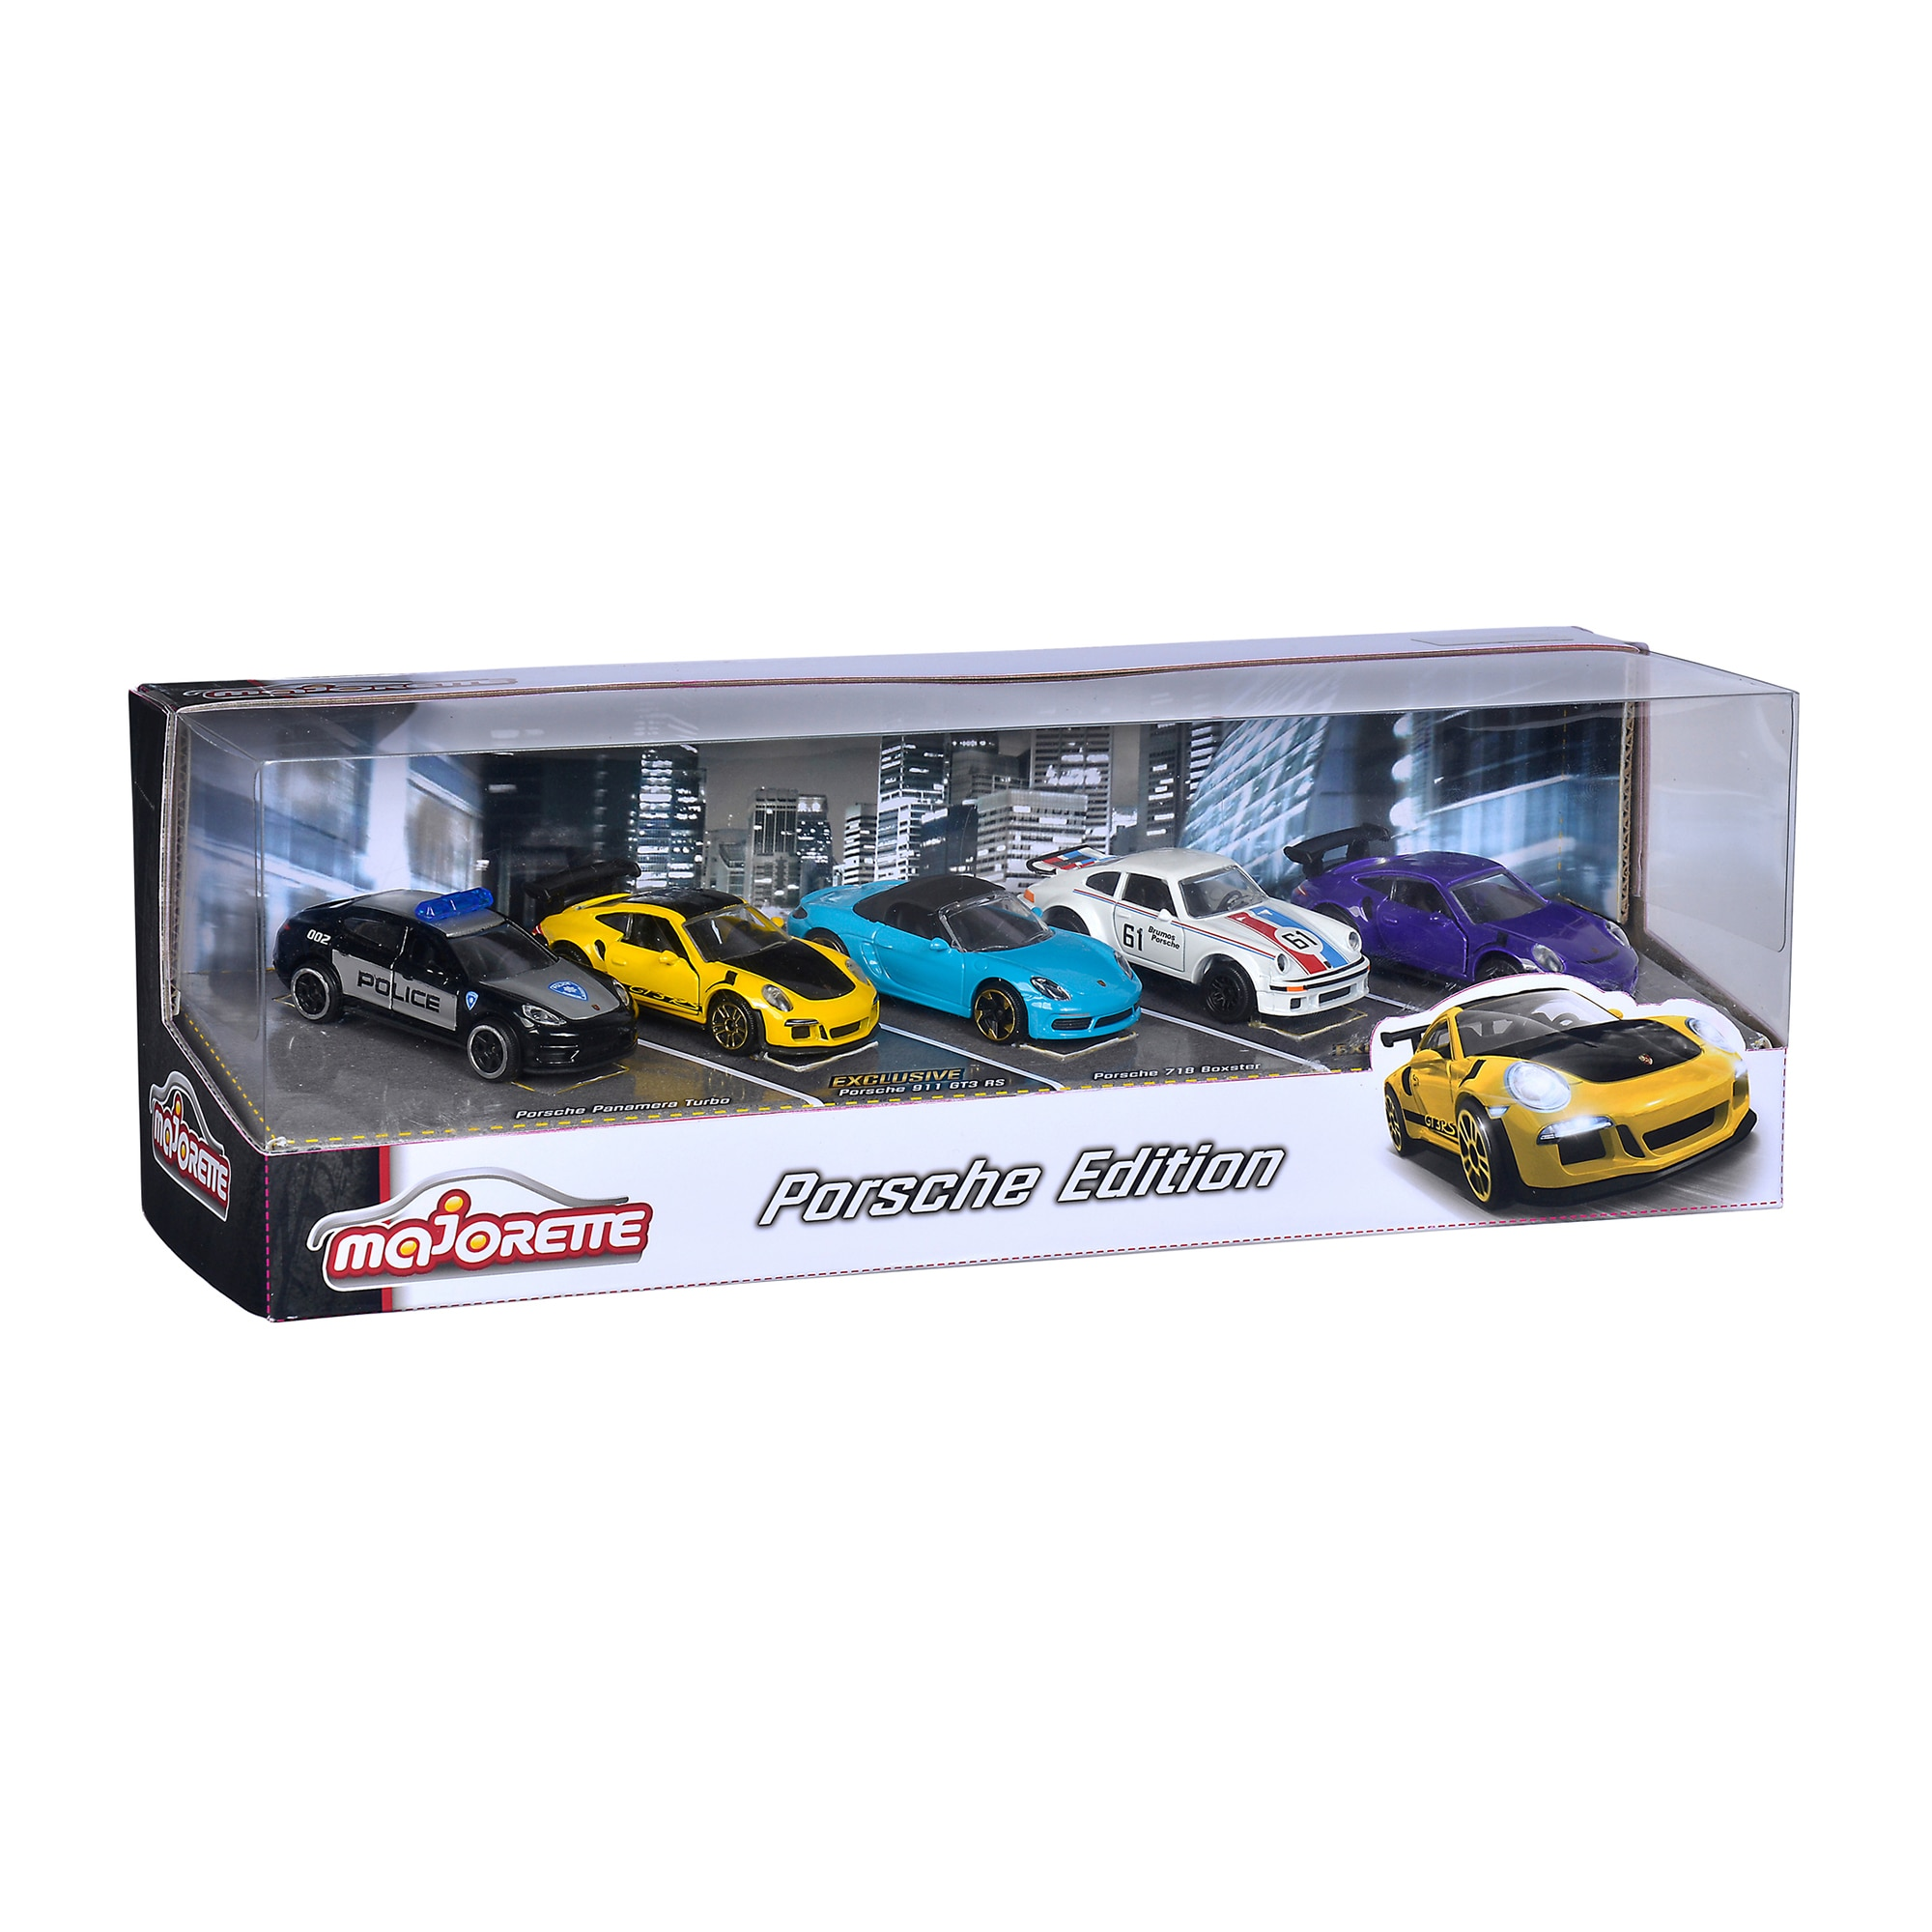 Set 5 masinute - Porsche Edition | Majorette